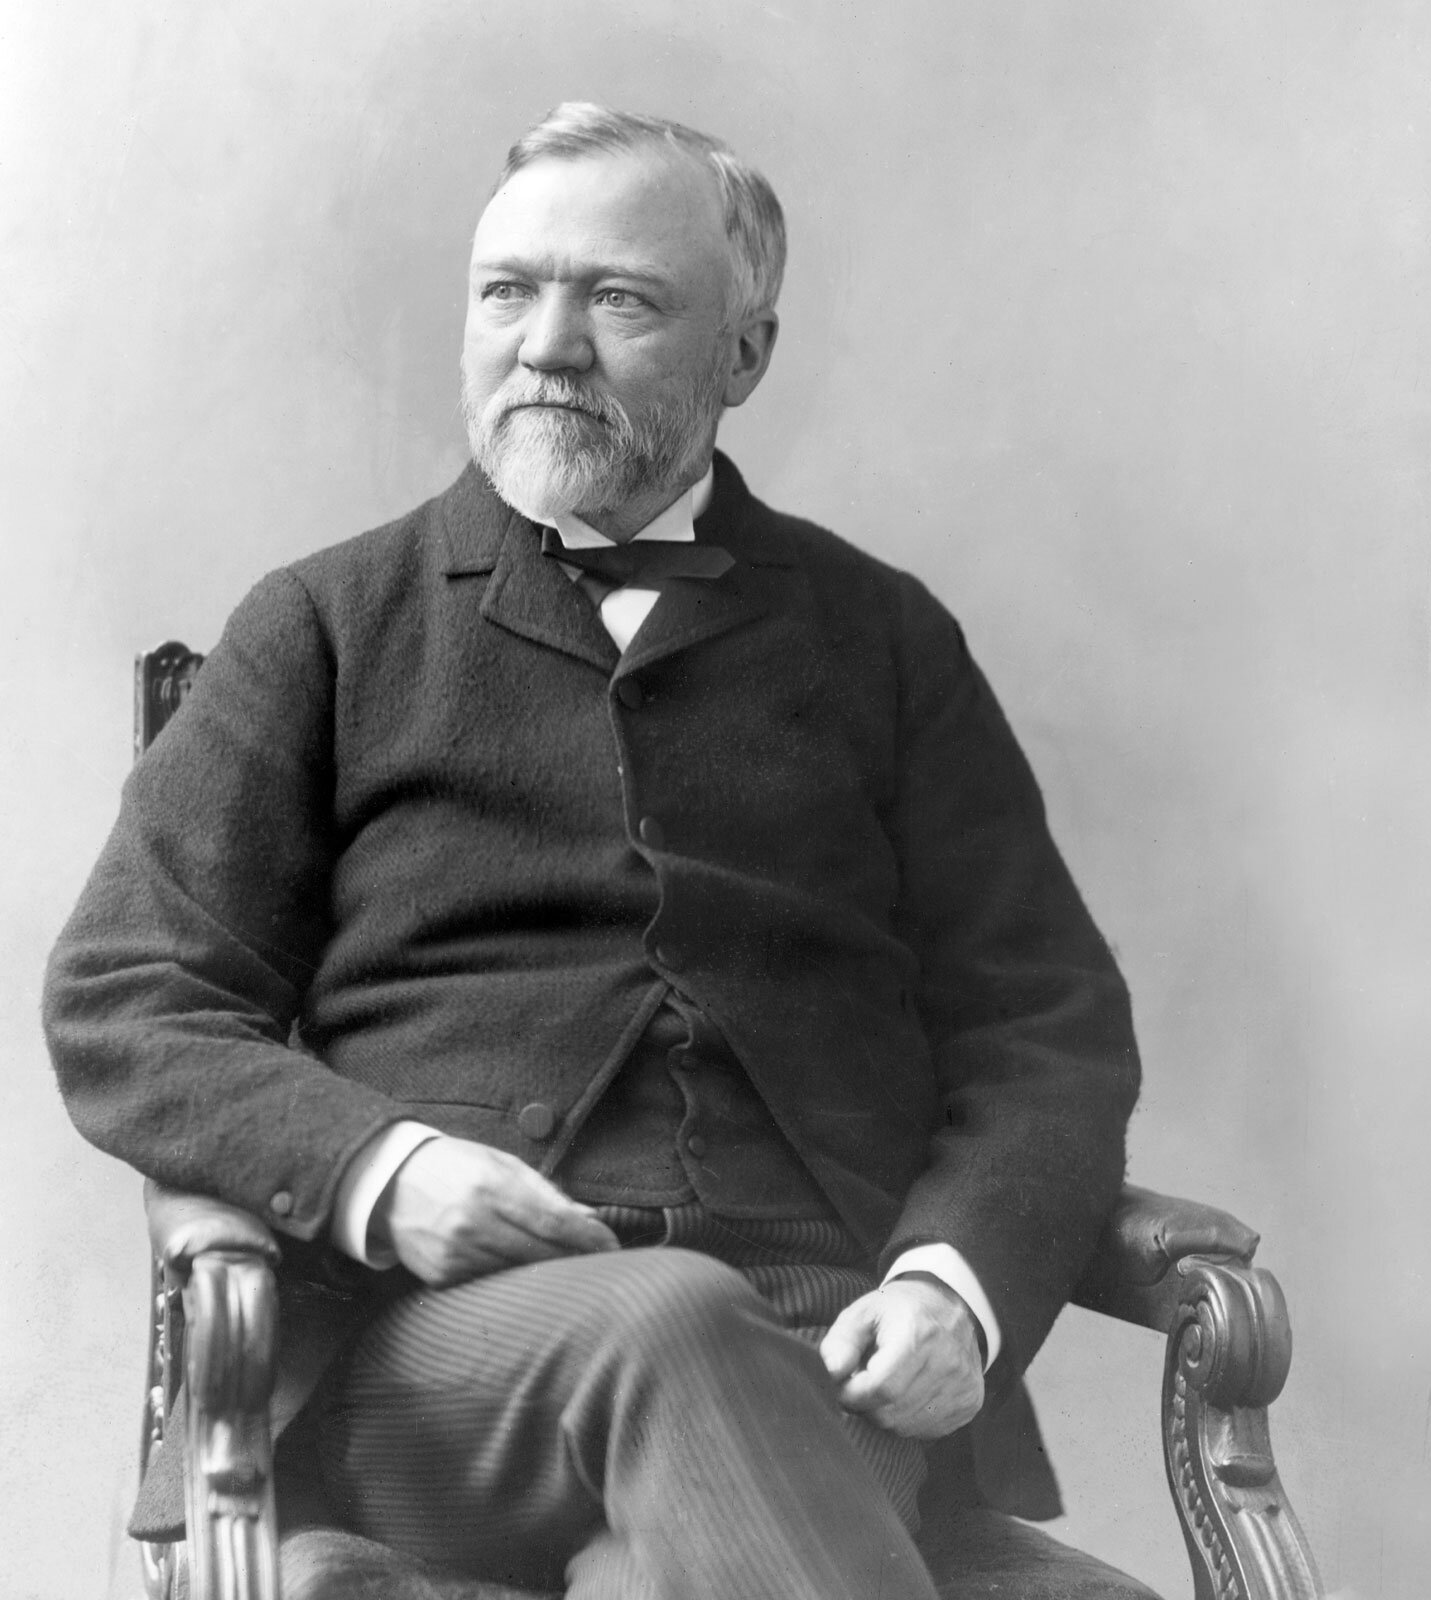 """""""Teamwork is the ability to work together toward a common vision, the ability to direct individual accomplishments toward organizational objectives. It is the fuel that allows common people to attain uncommon results."""" -Andrew Carnegie - Image Source - Britannica.com"""